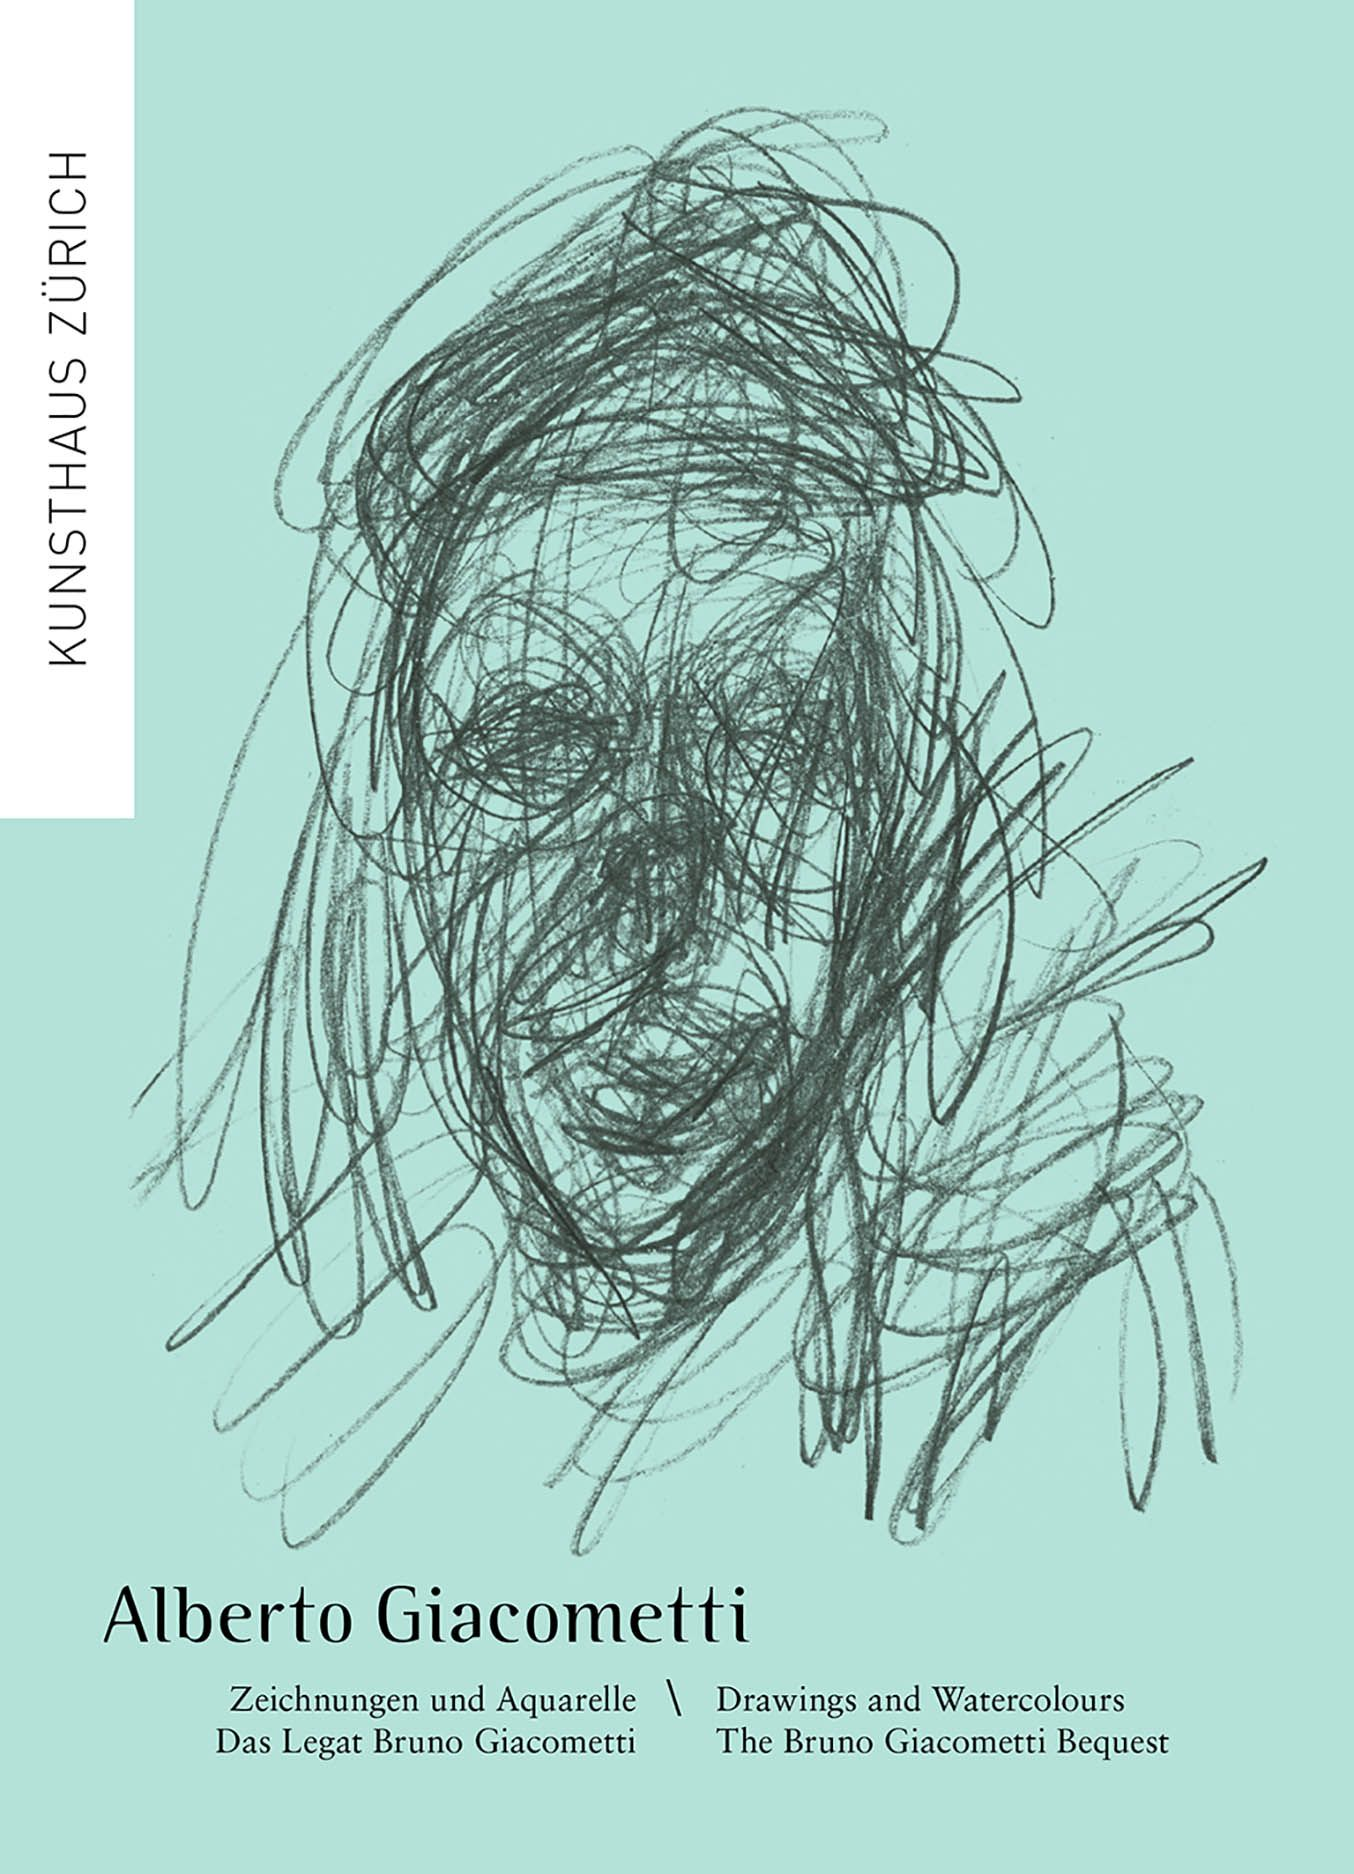 Alberto Giacometti: Drawings and Watercolours. The Bruno Giacometti Bequest